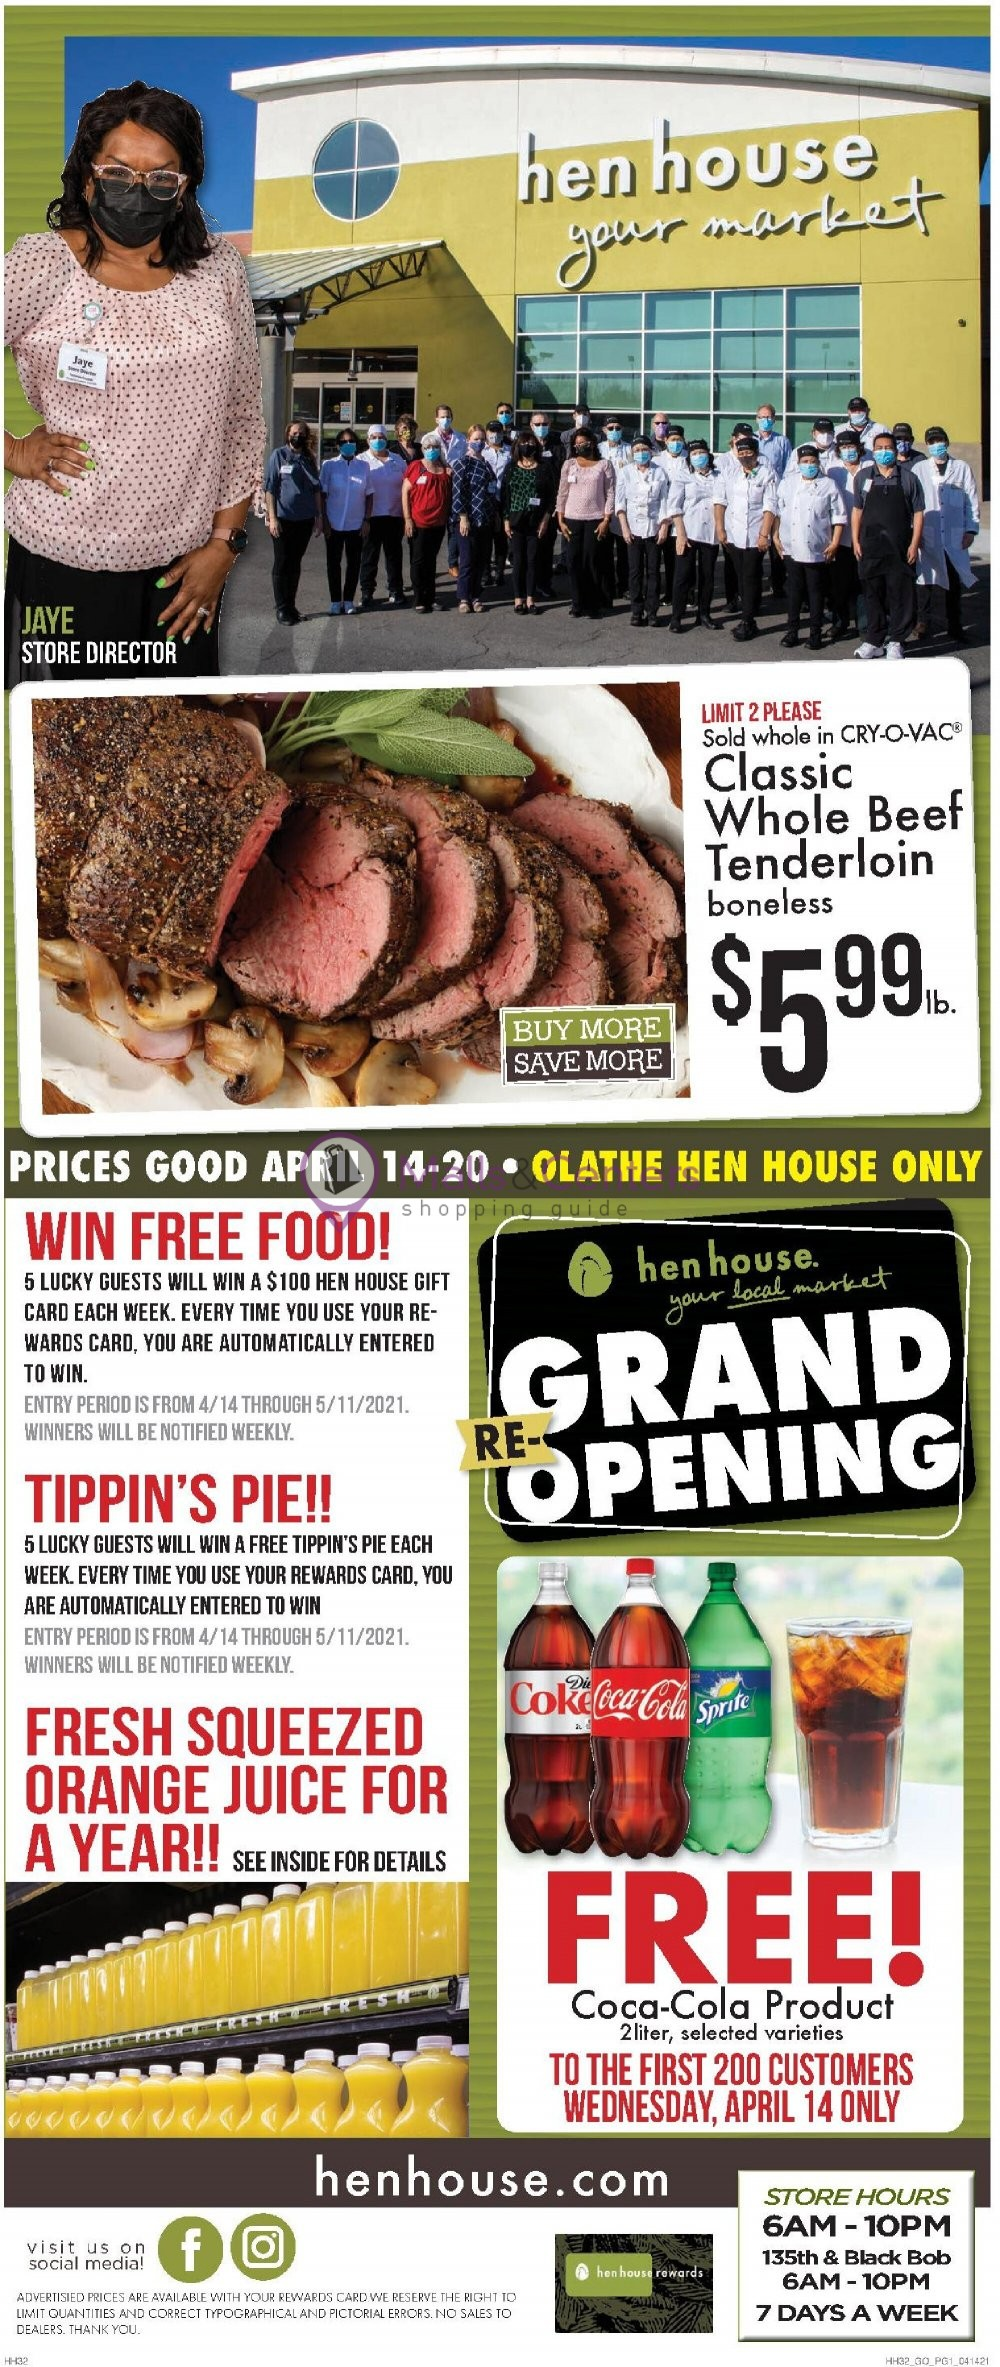 weekly ads Hen House - page 1 - mallscenters.com